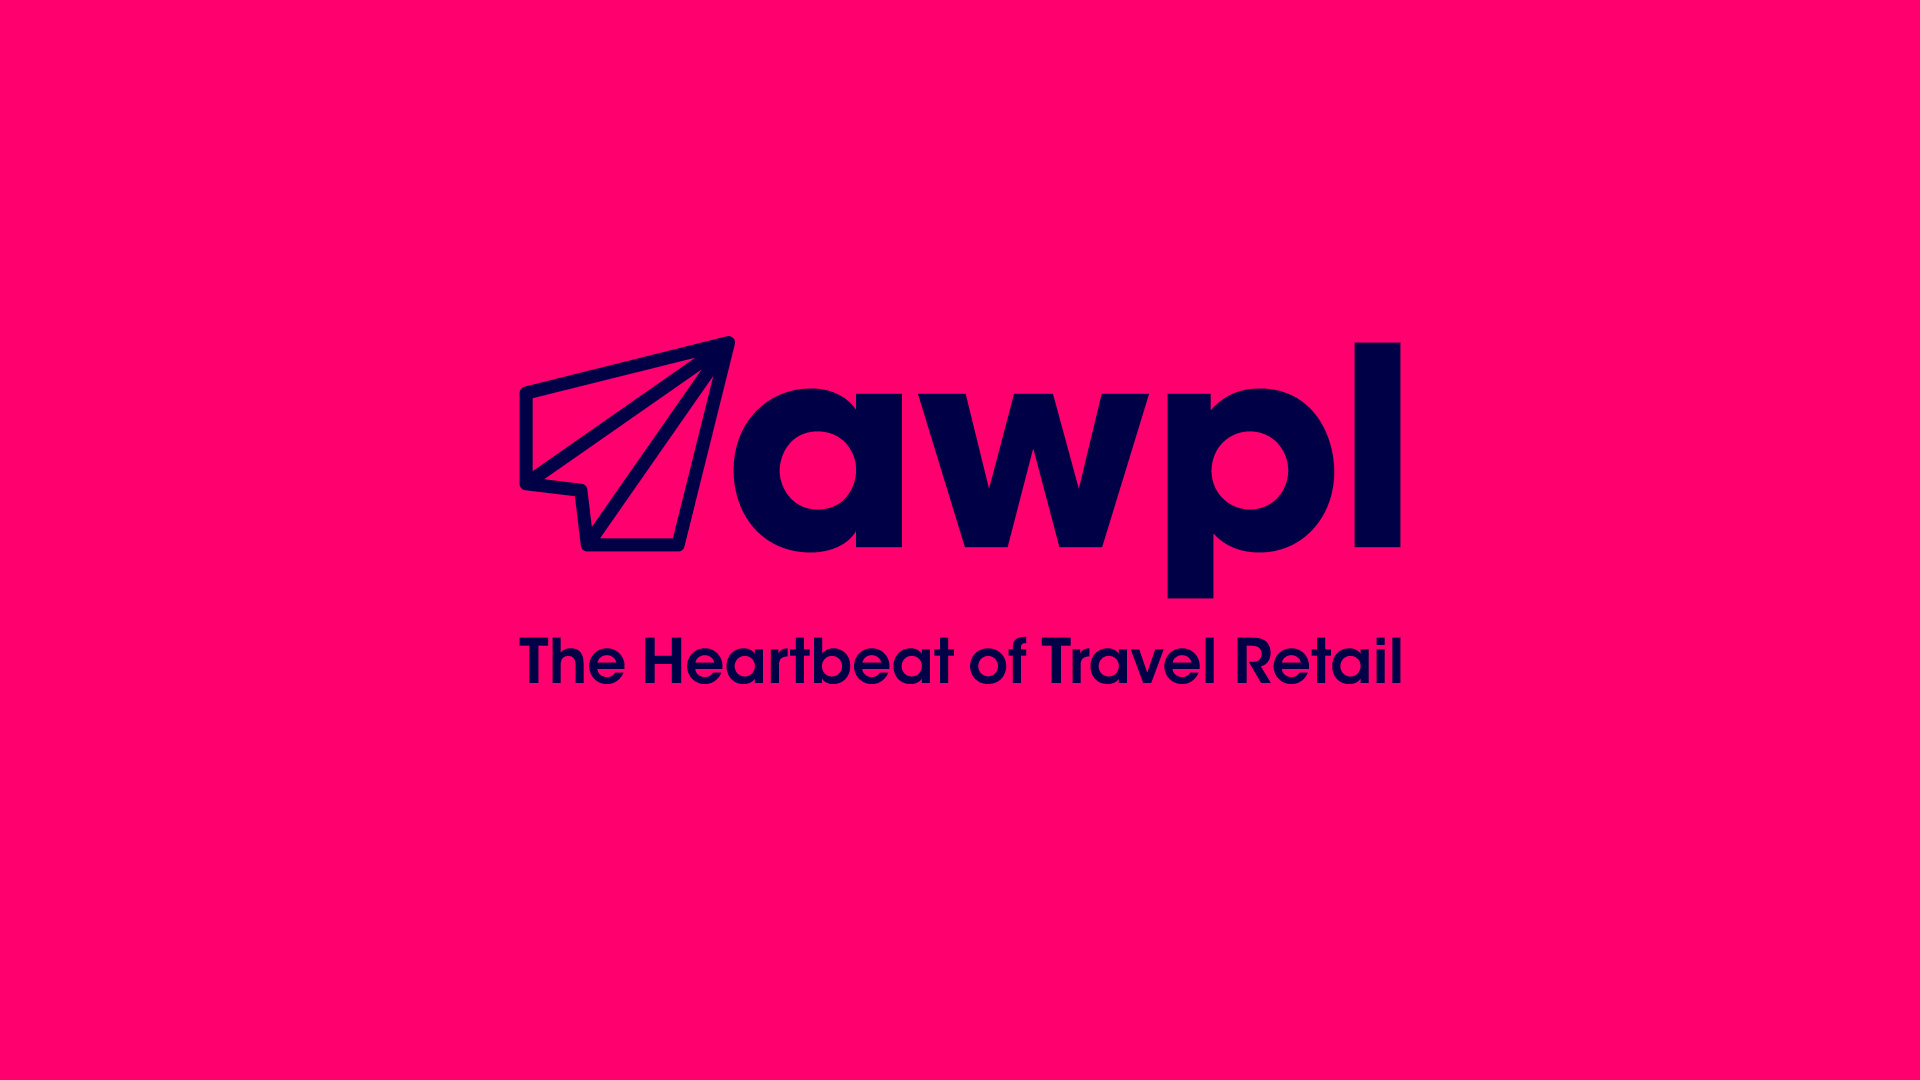 awpl Project Images – Logo